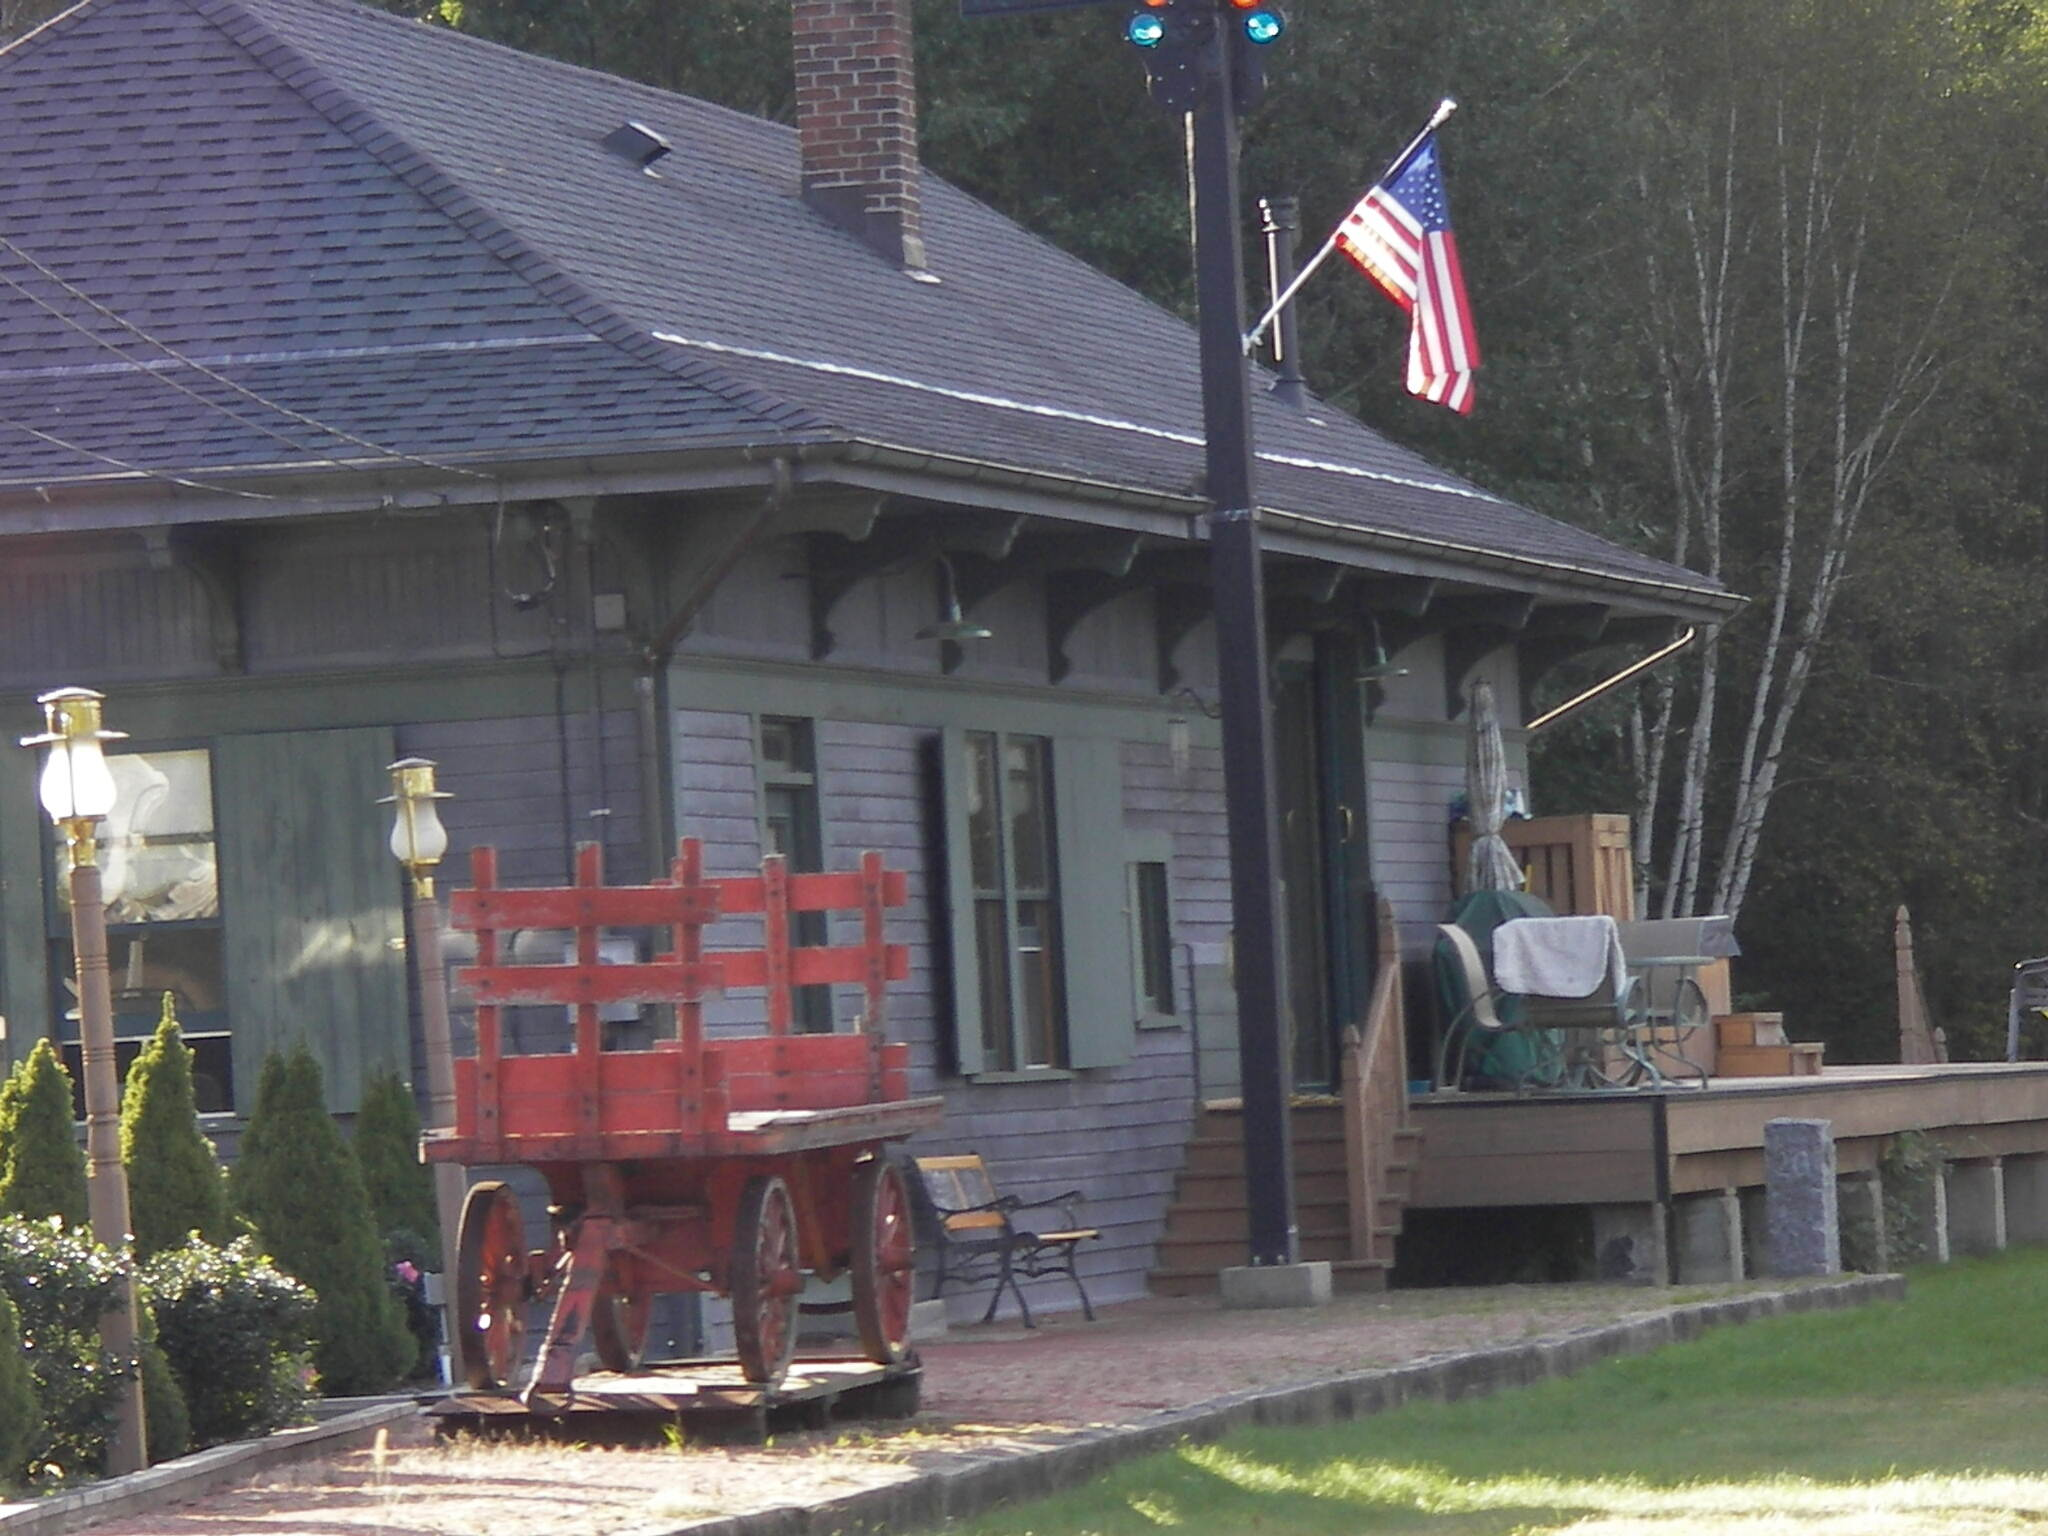 Ashuelot Rail Trail Converted station at Hinsdale You ride by both the station and cabooses.